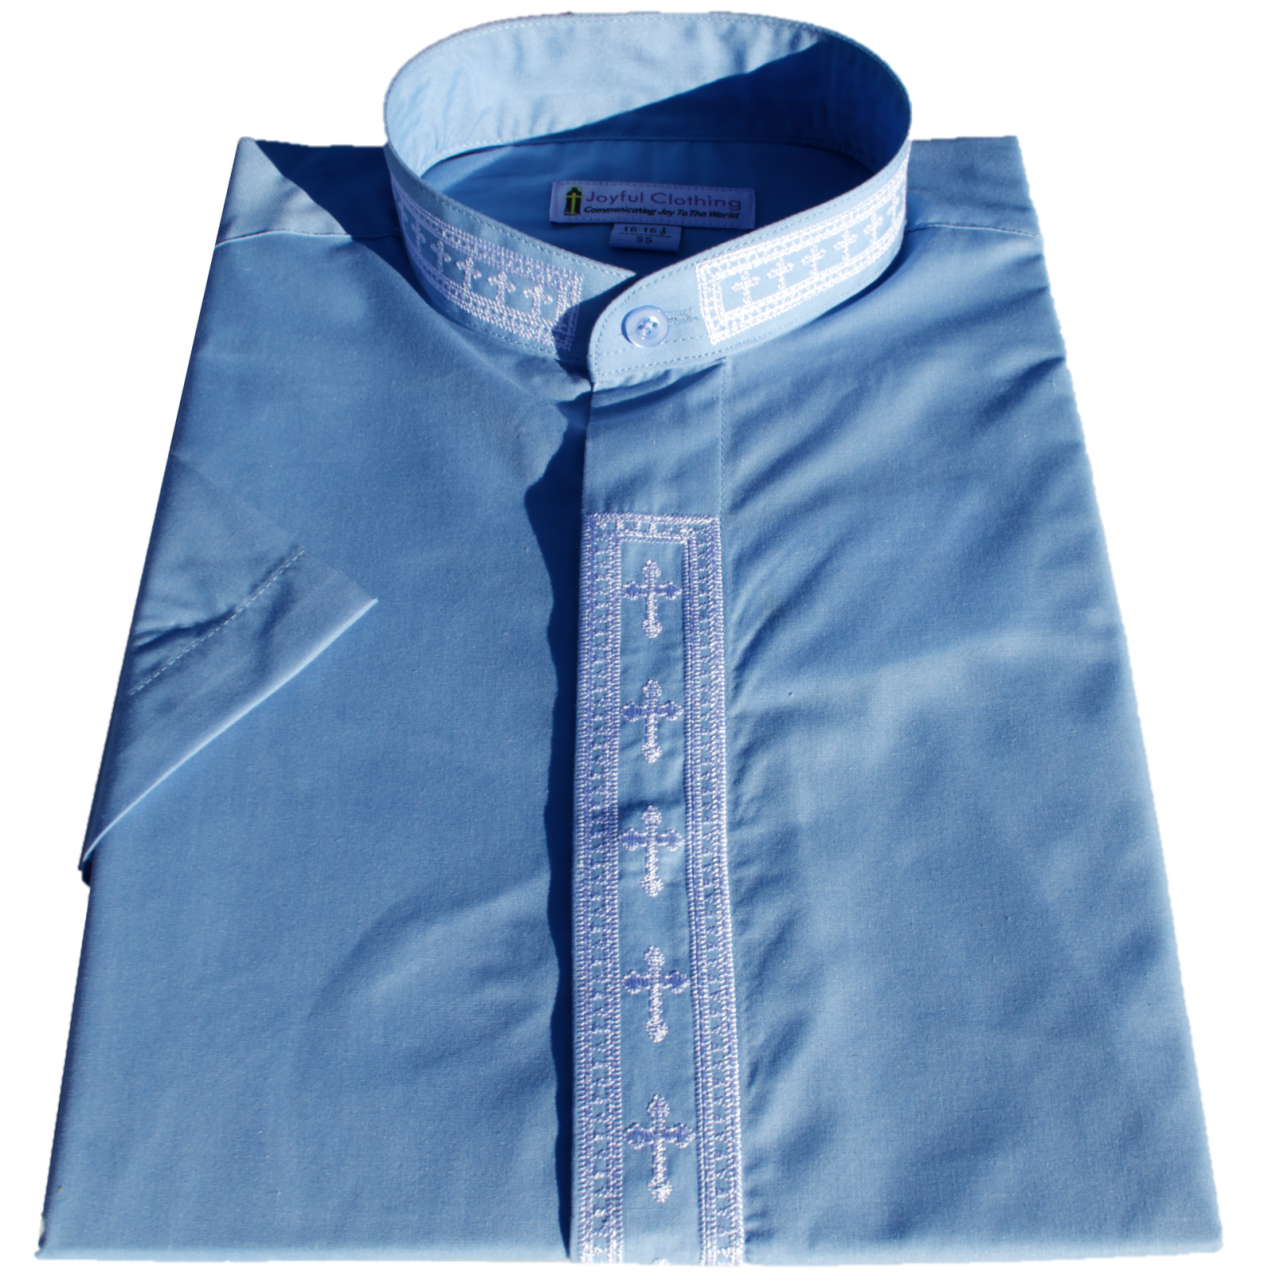 362. Men's Short-Sleeve Clergy Shirt With Fine Embroidery - Light Blue/White